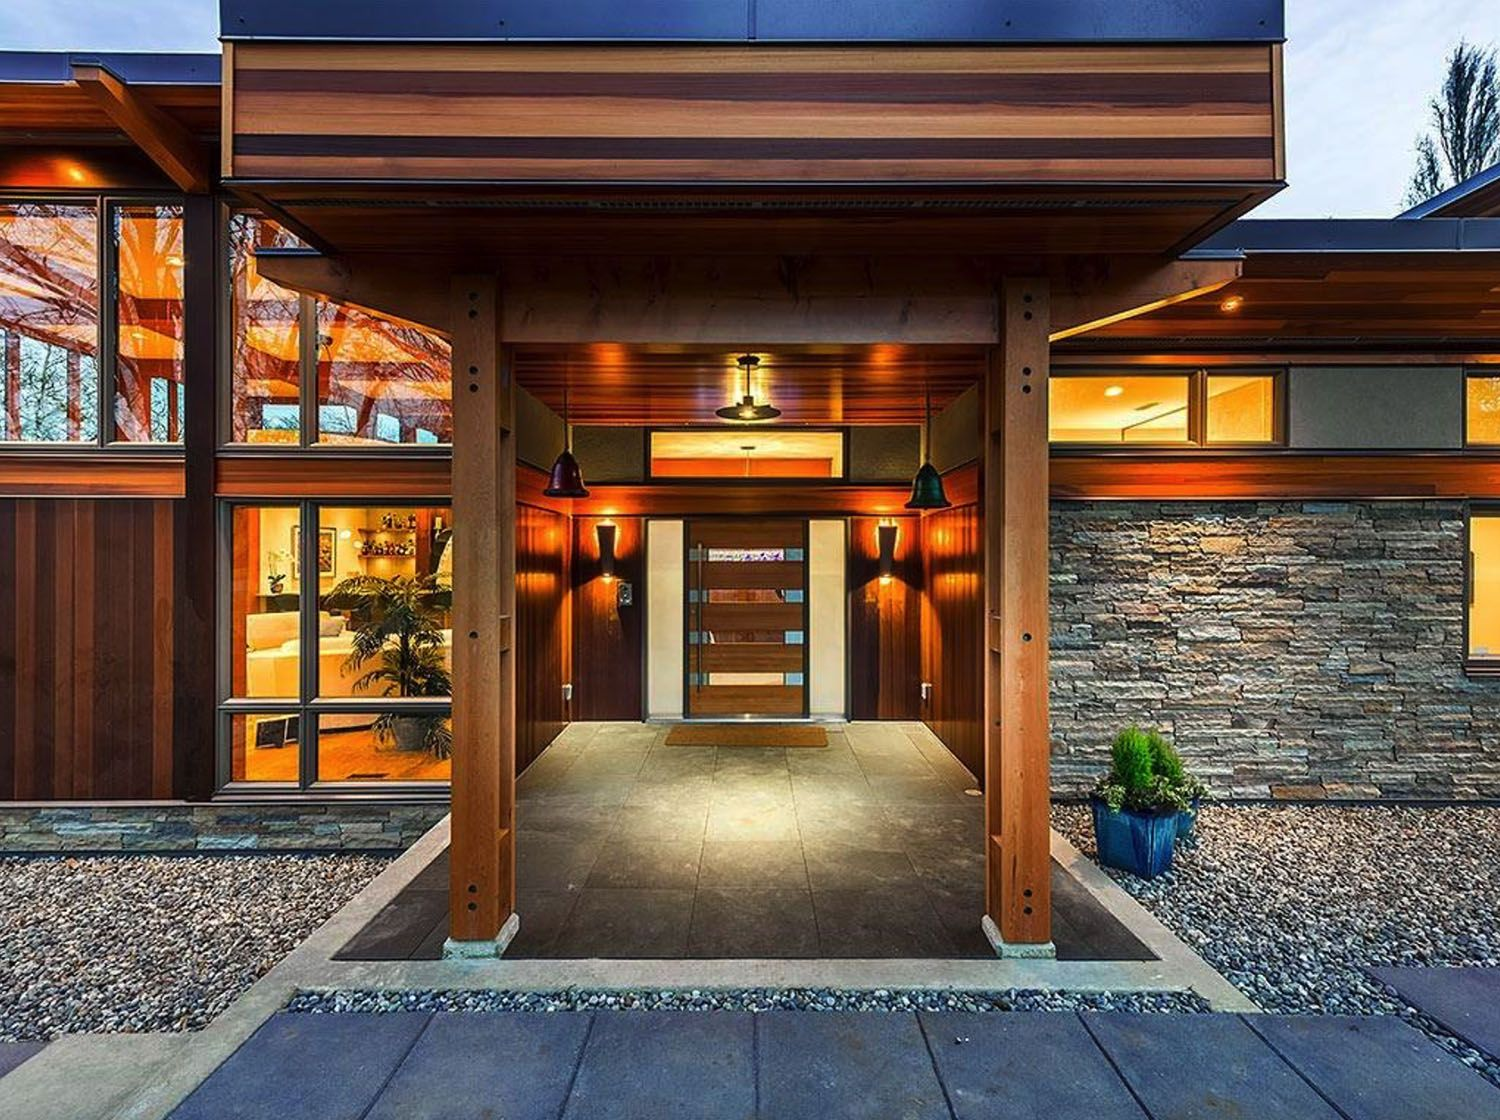 Step into this jawdropping West Coast modern home that's